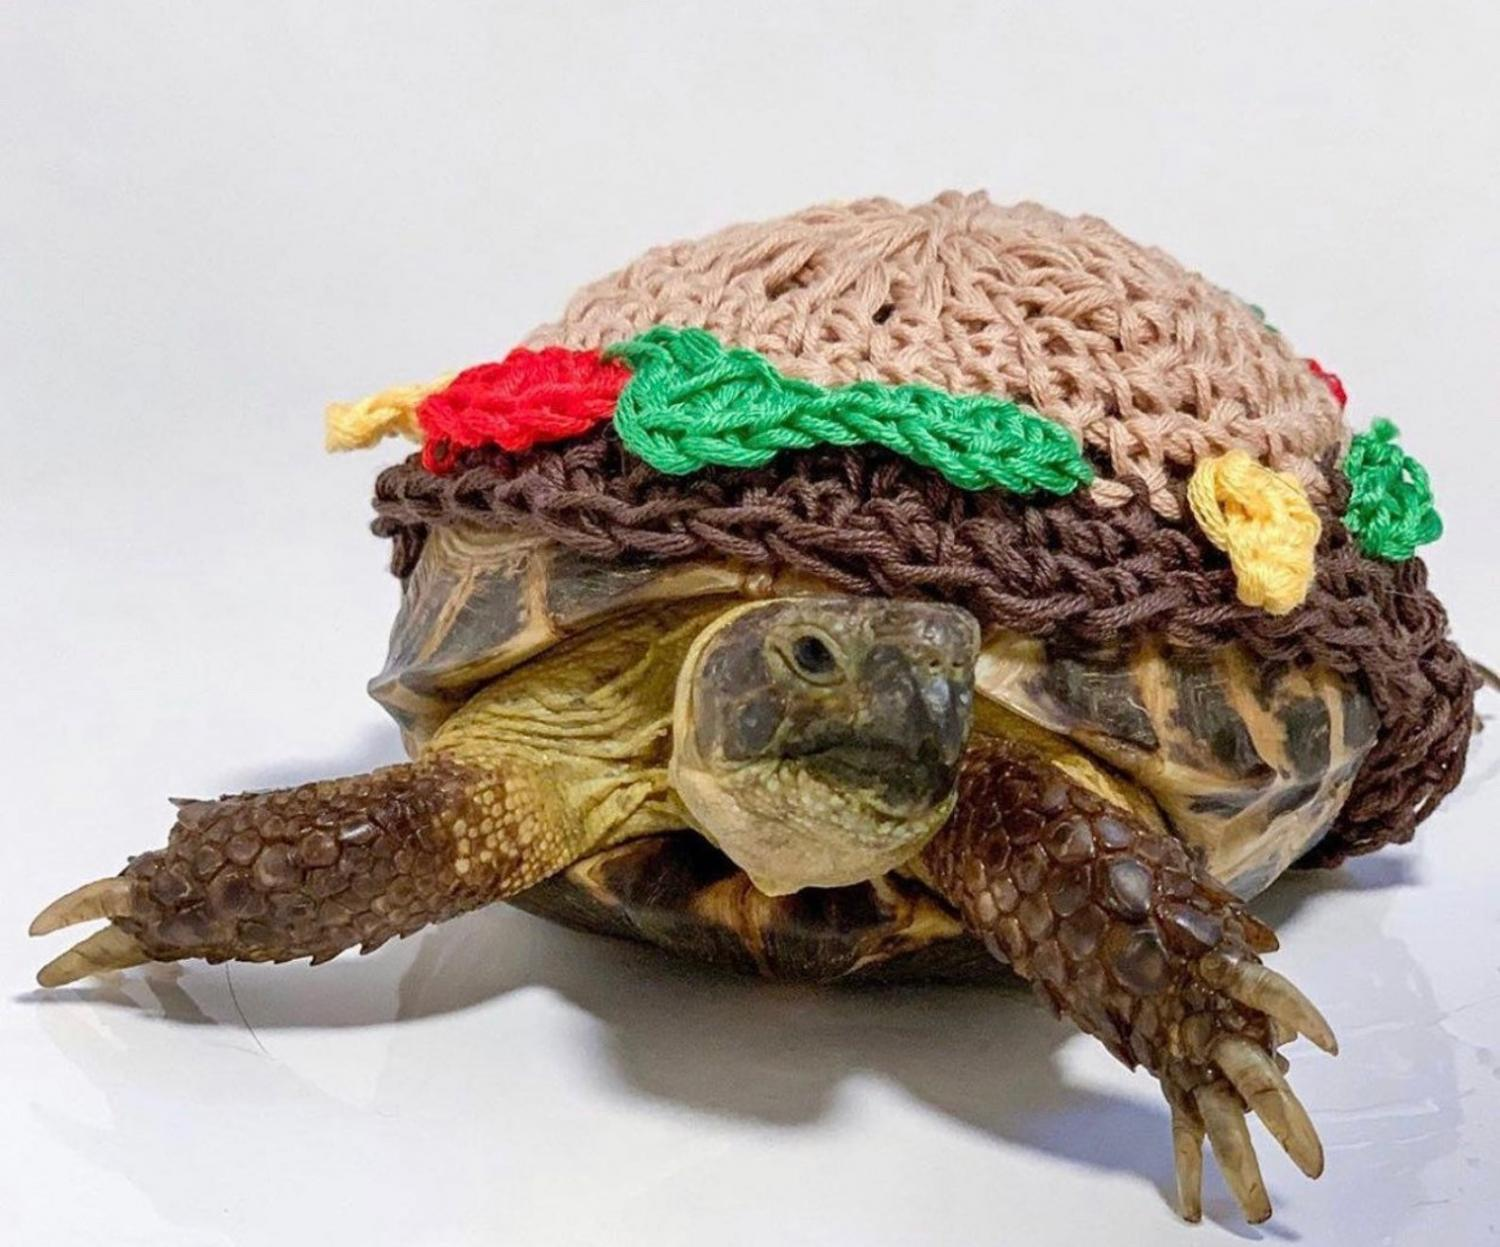 Crochet Turtle Sweater - Cheeseburger tortoise cozy